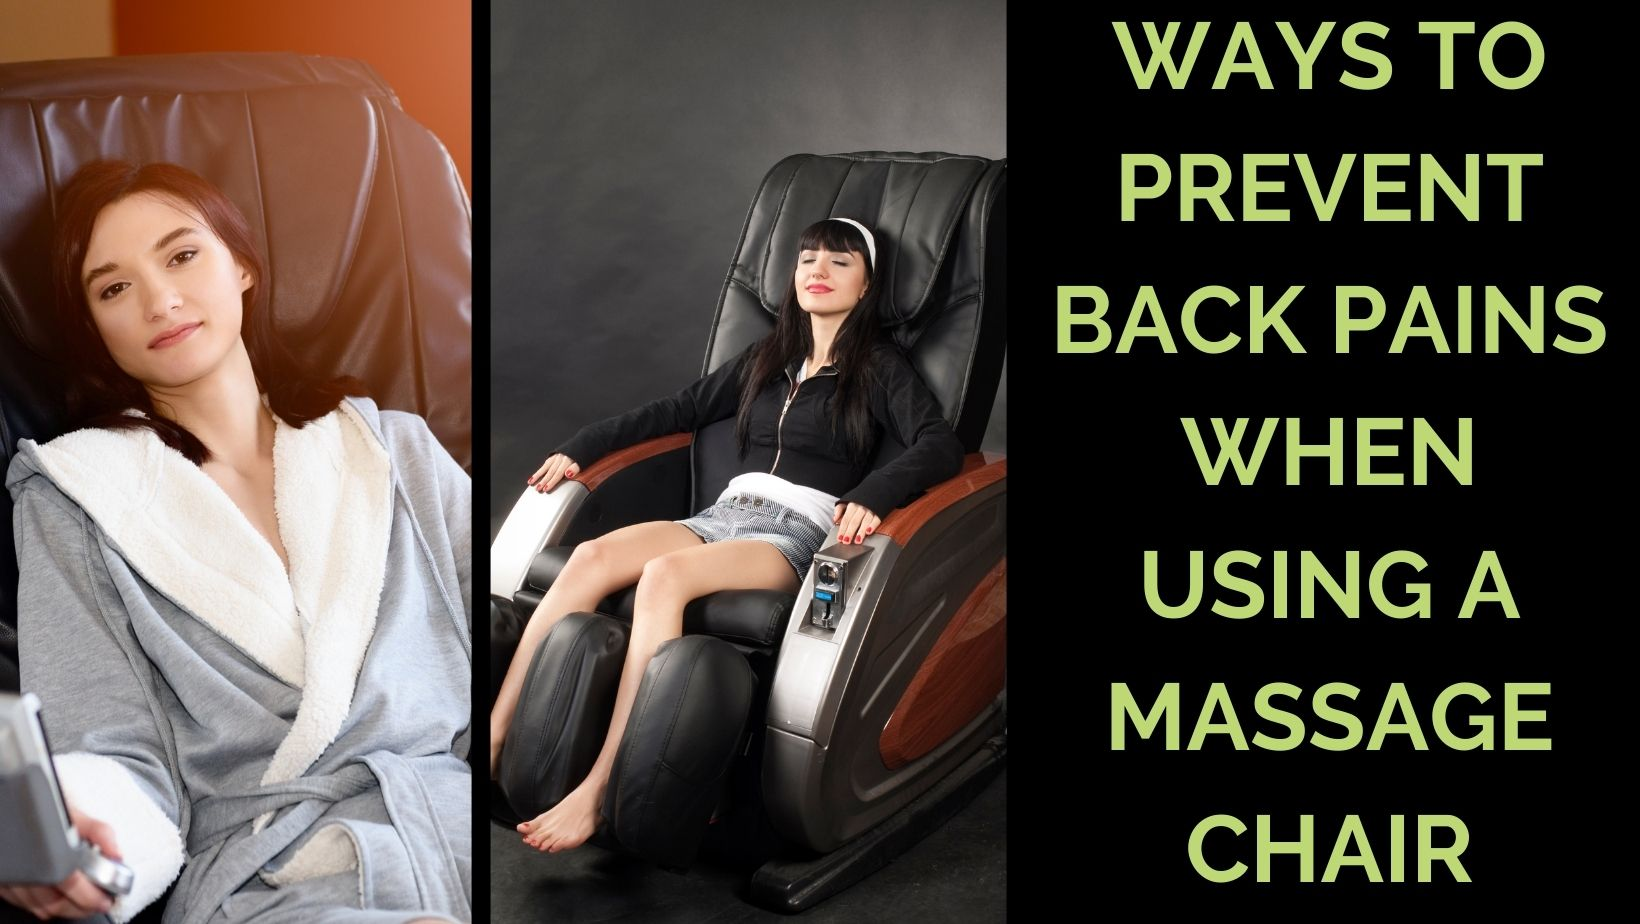 Back pain after massage chair